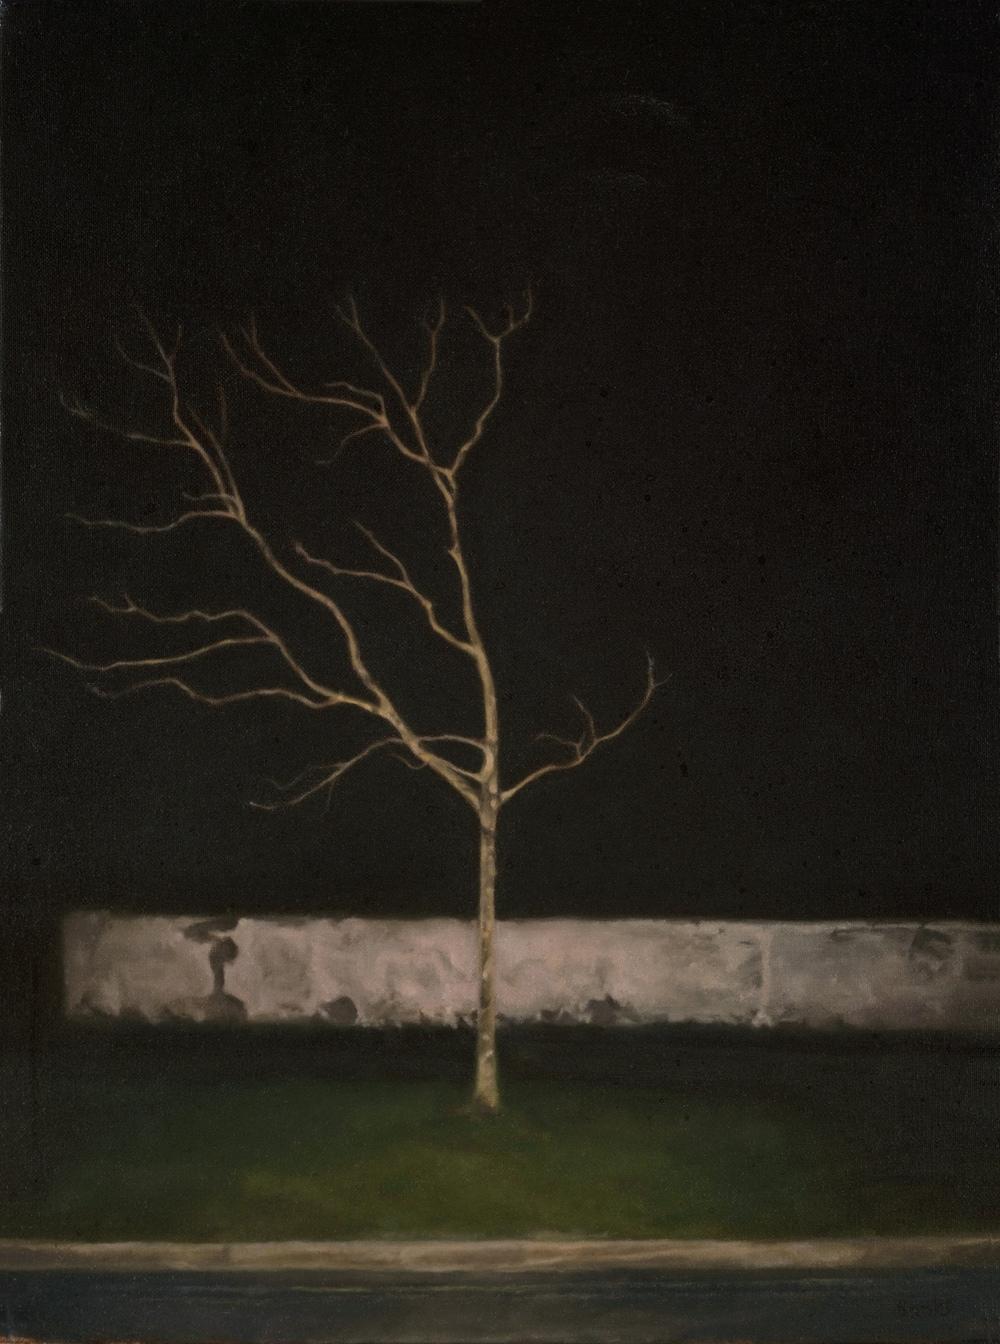 FILSHAM,  oil on canvas, 30cm x 40cm, 2012